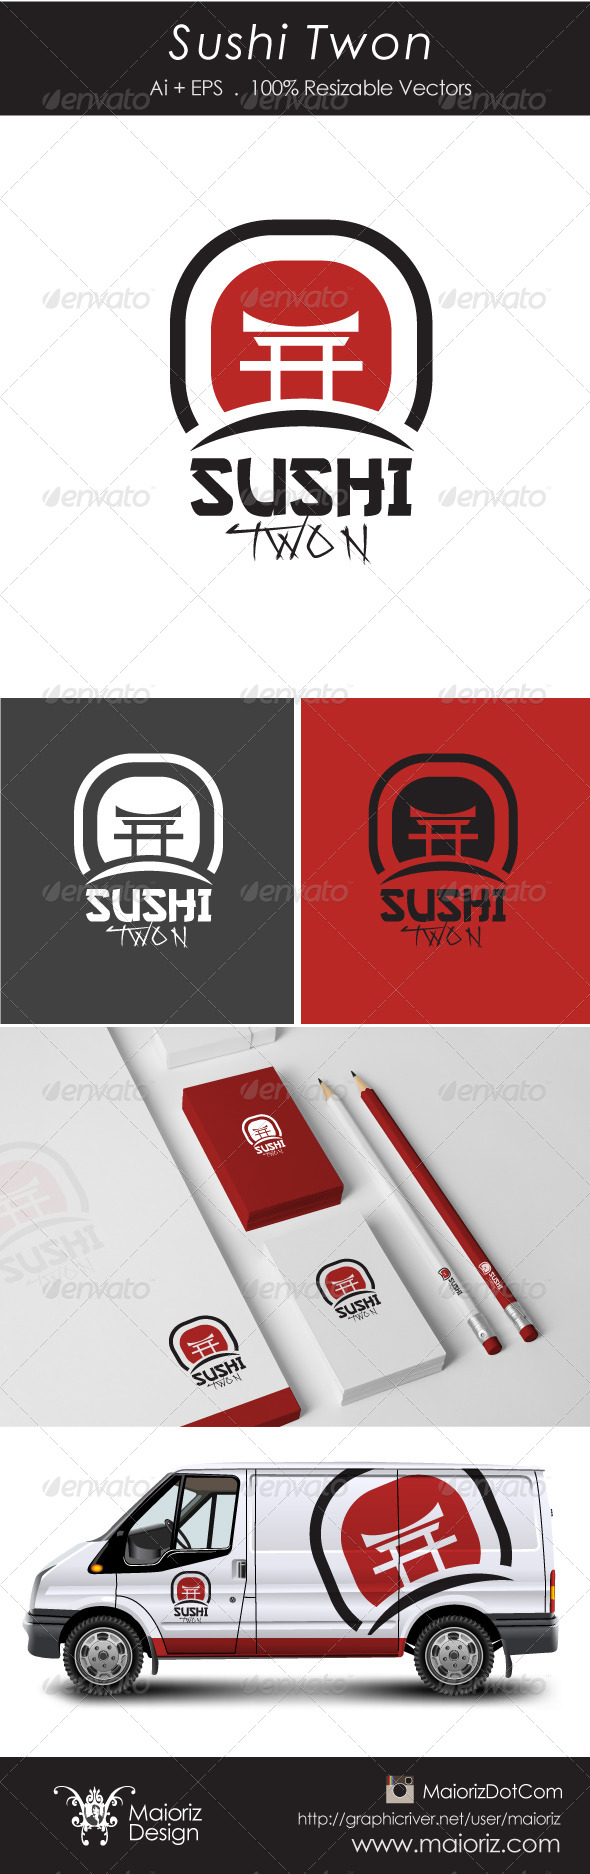 Sushi Twon Logotype - Food Logo Templates